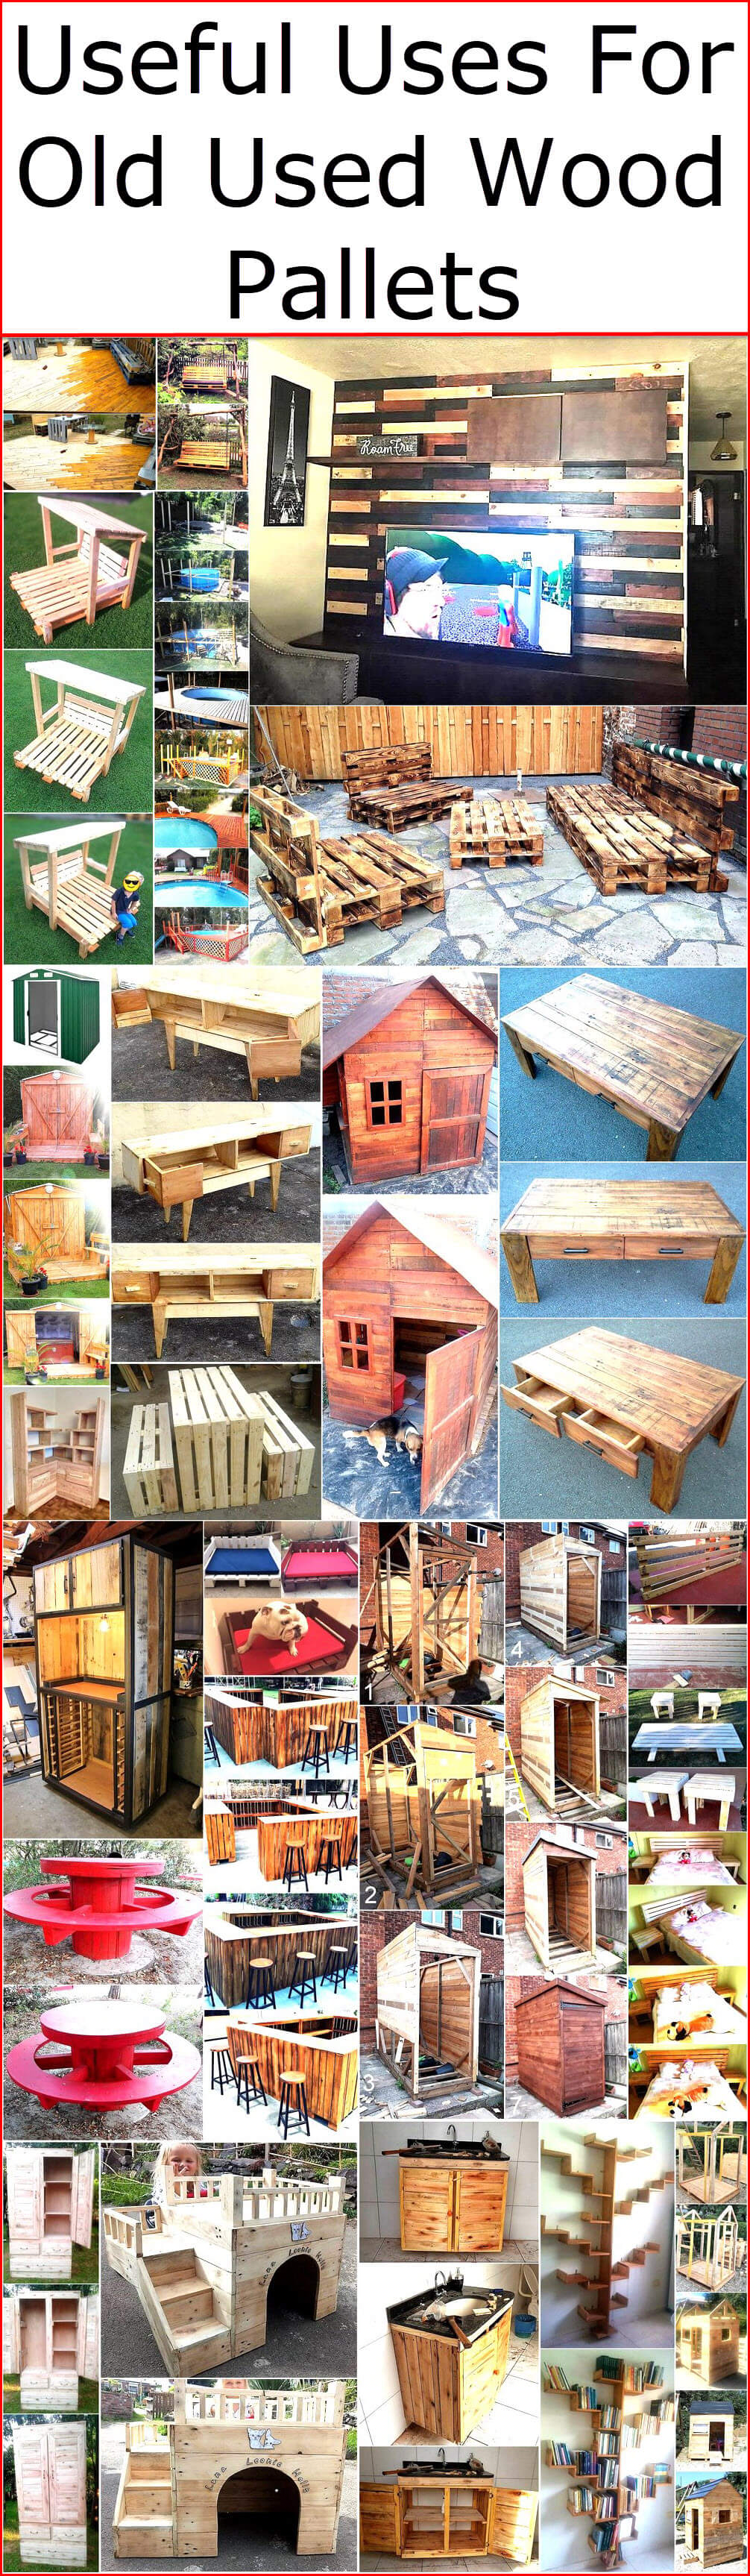 Useful Uses For Old Used Wood Pallets